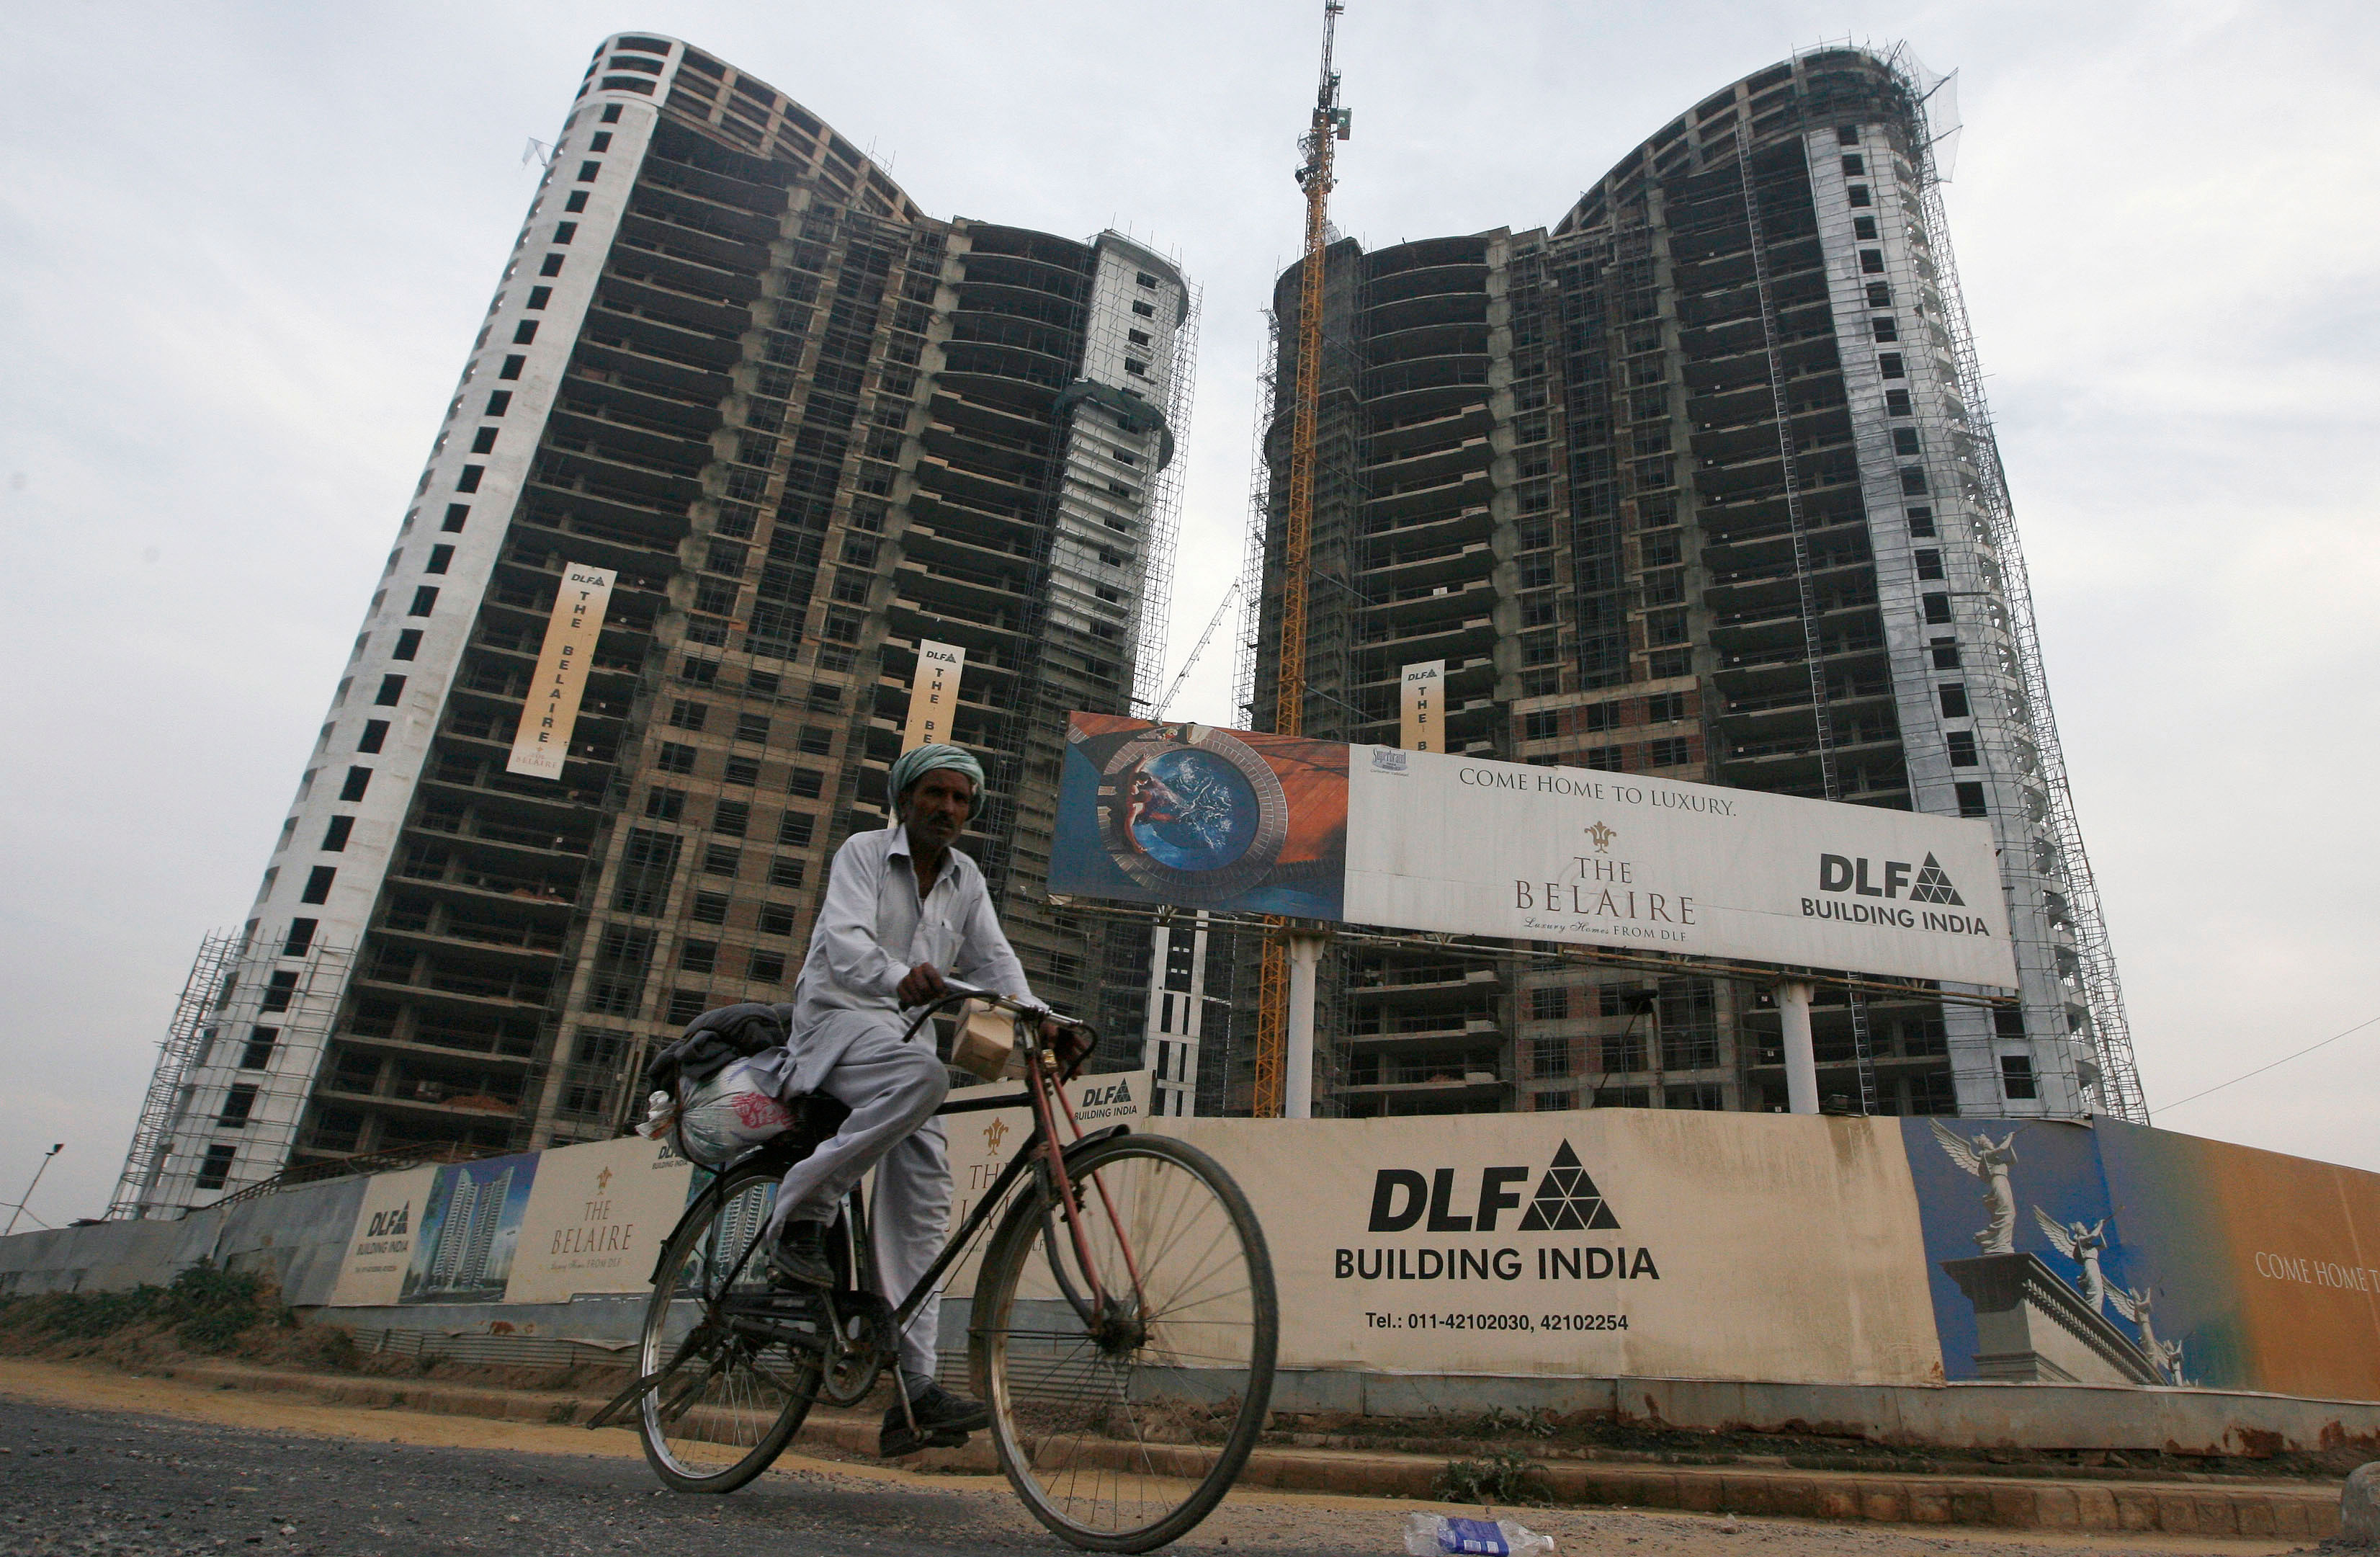 DLF appoints bankers to sell promoters' stake in rental business